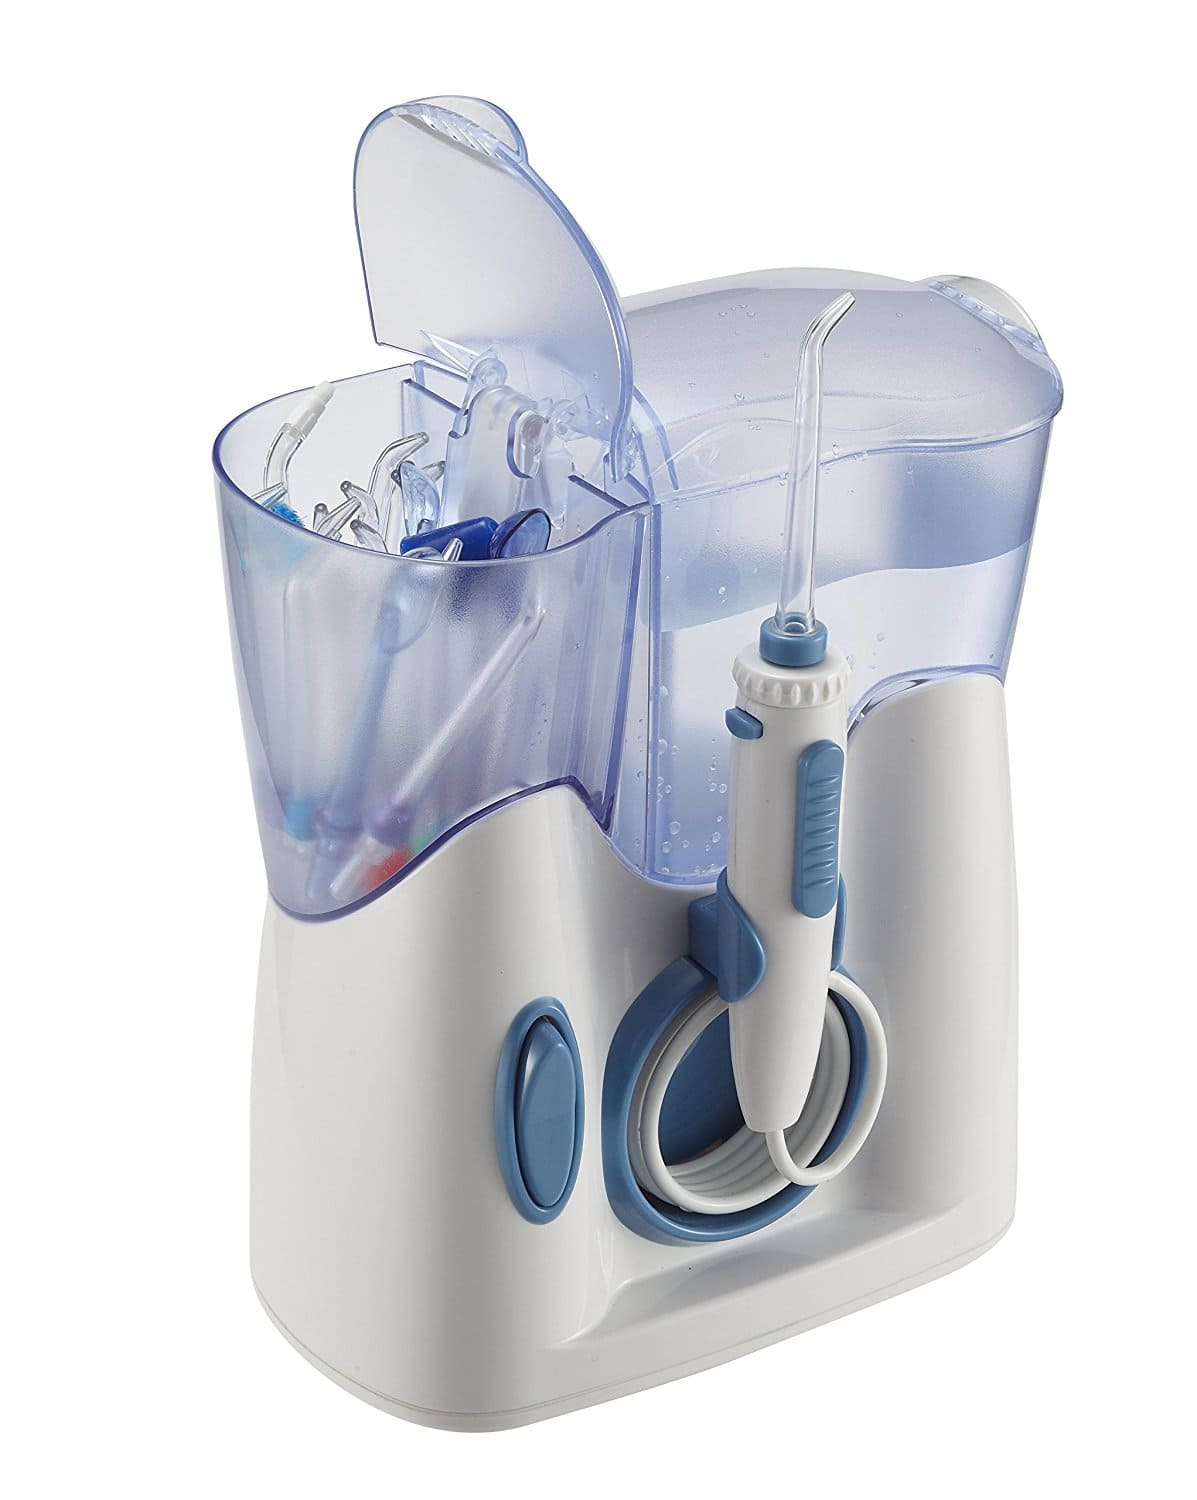 Water Dental Flosser, Quiet Design (50db),12 Multi-functional Tips - $23.96 FS